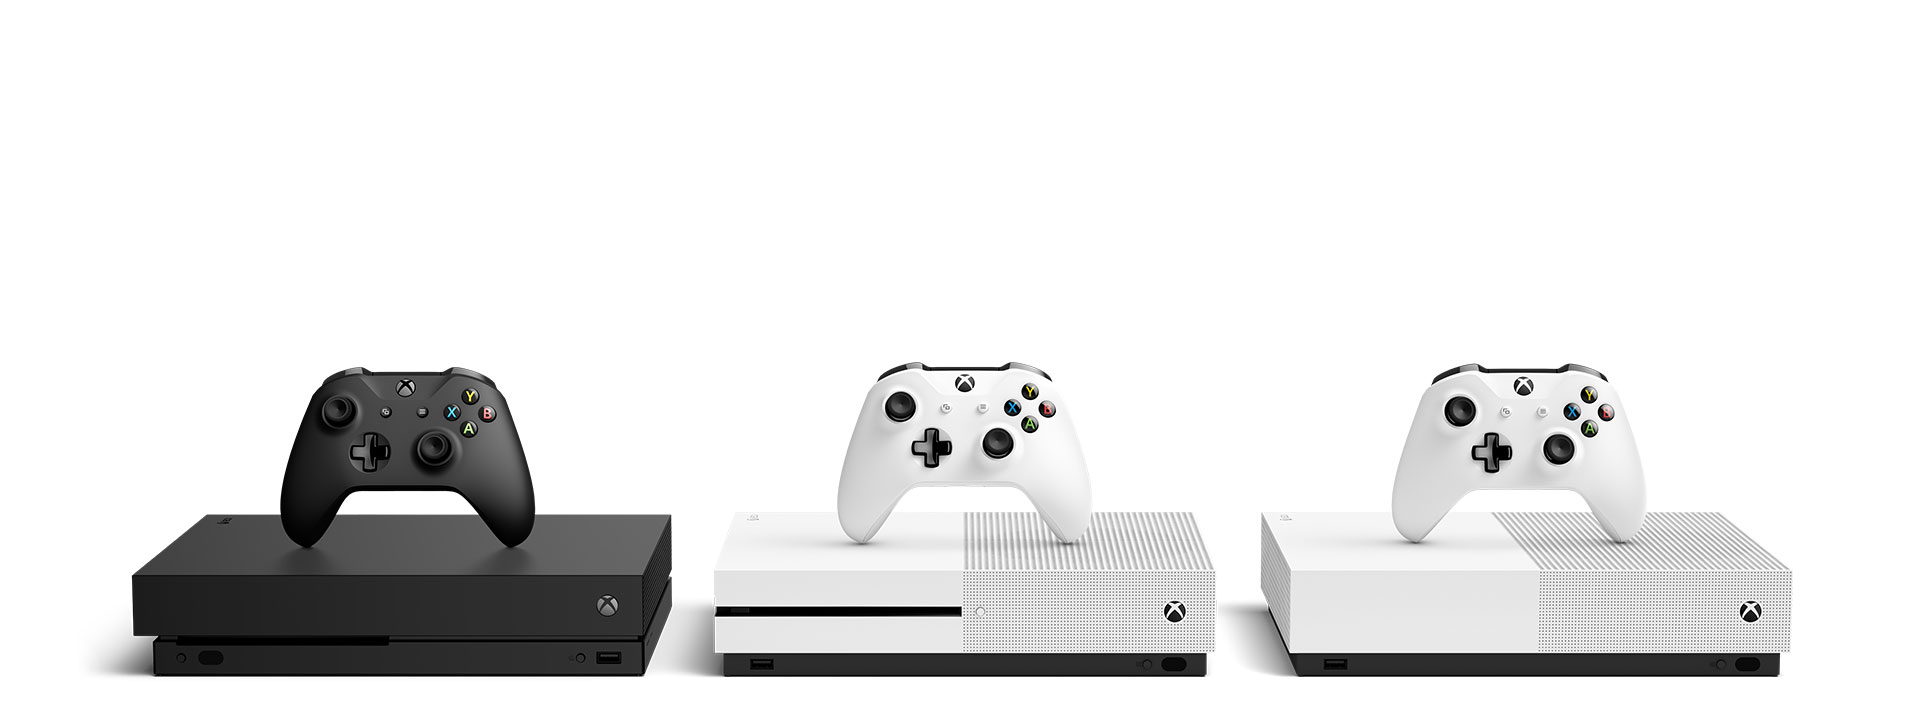 An Xbox One X console, Xbox One S console, and an Xbox One X All Digital console on a white background